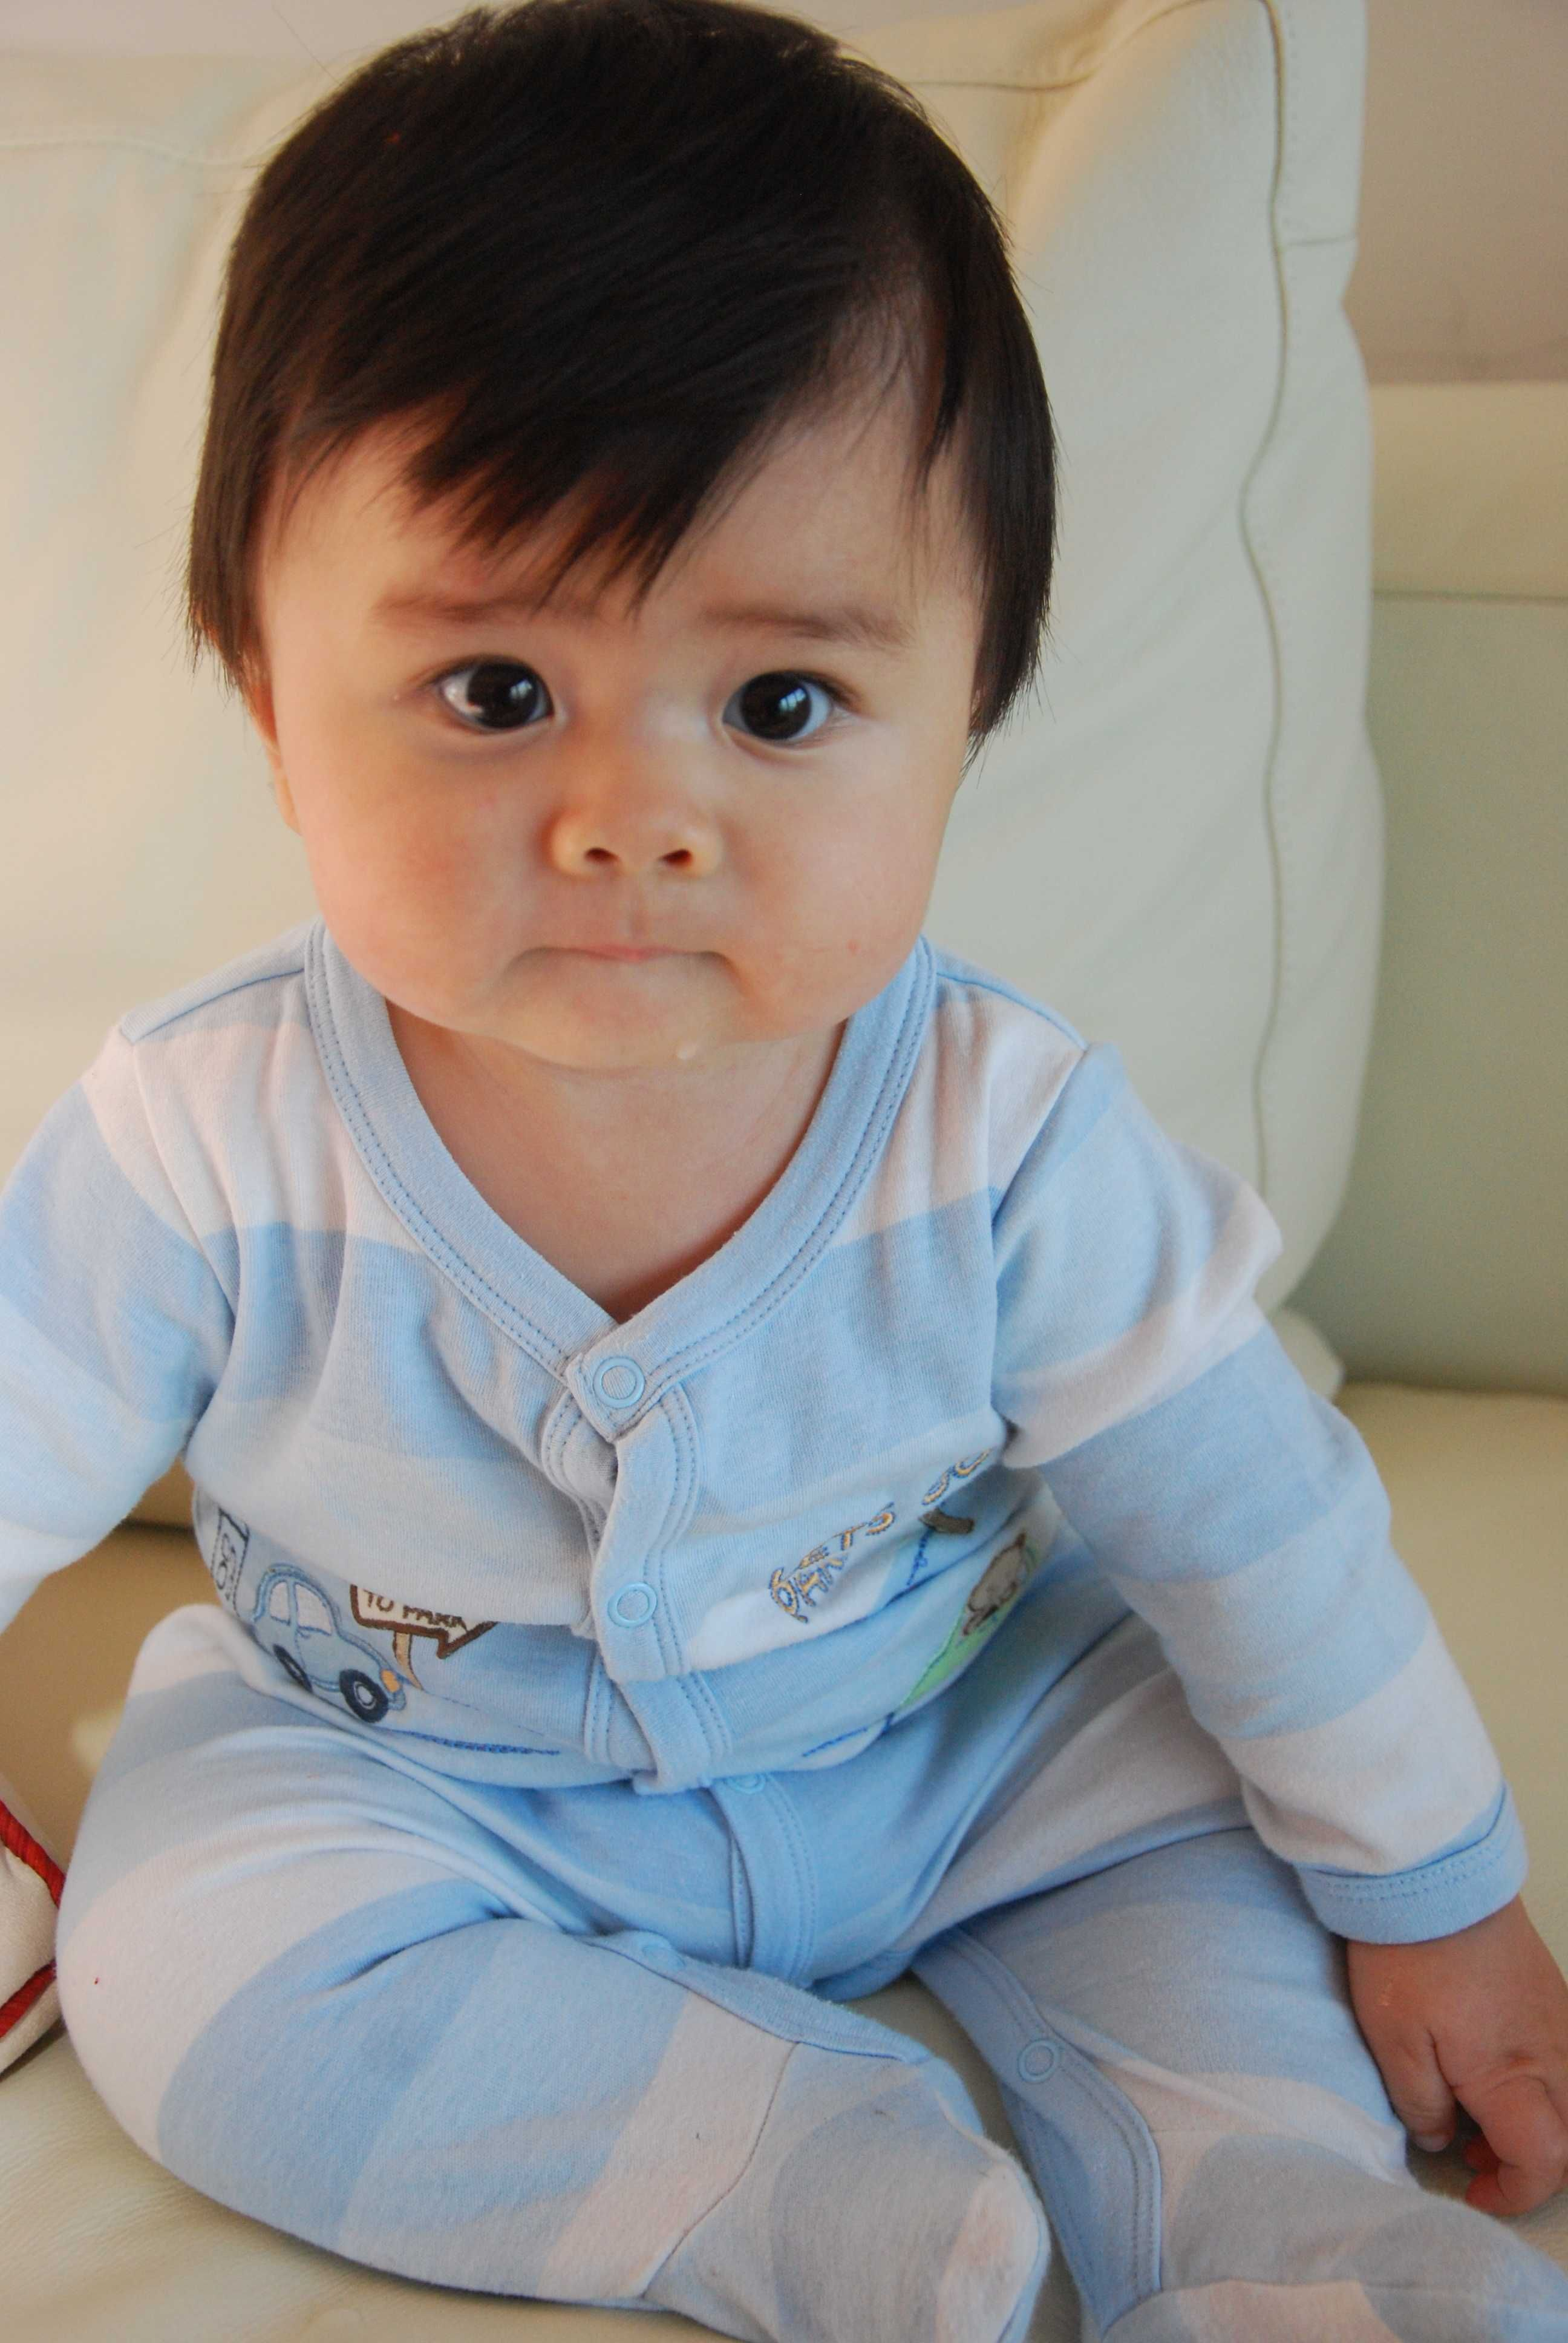 2592x3872 Backgrounds For Of Super Cute Babies Coming And Korean Baby Images ...